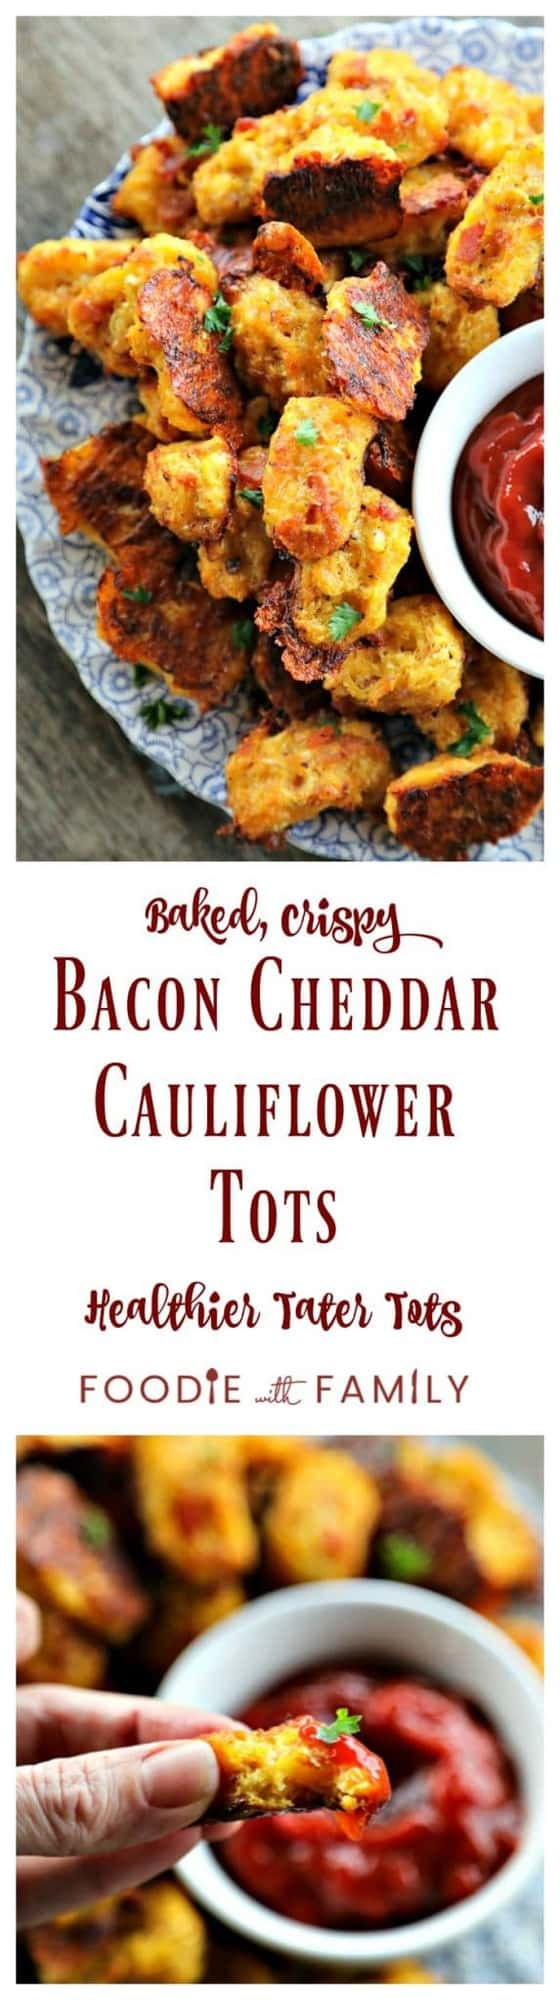 Baked, crispy, Bacon Cheddar Cauliflower Tots {Healthier Tater Tots} are the ultimate in crispy, cheesy perfection. You'd never know they're lower carb than tater tots and honestly, you'd be hard pressed to know they're NOT tater tots.